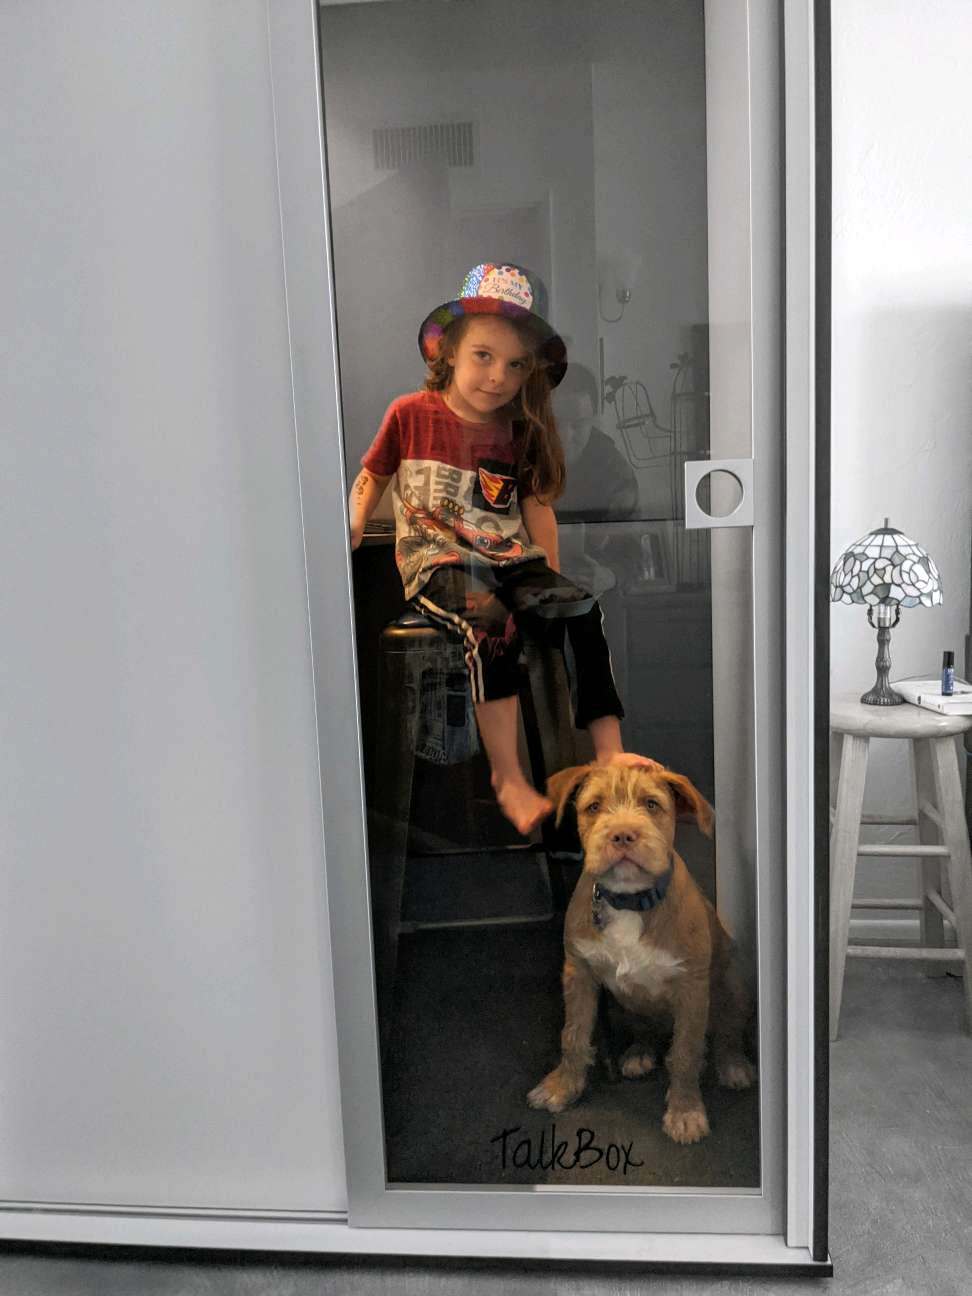 Child and dog in TalkBox booth